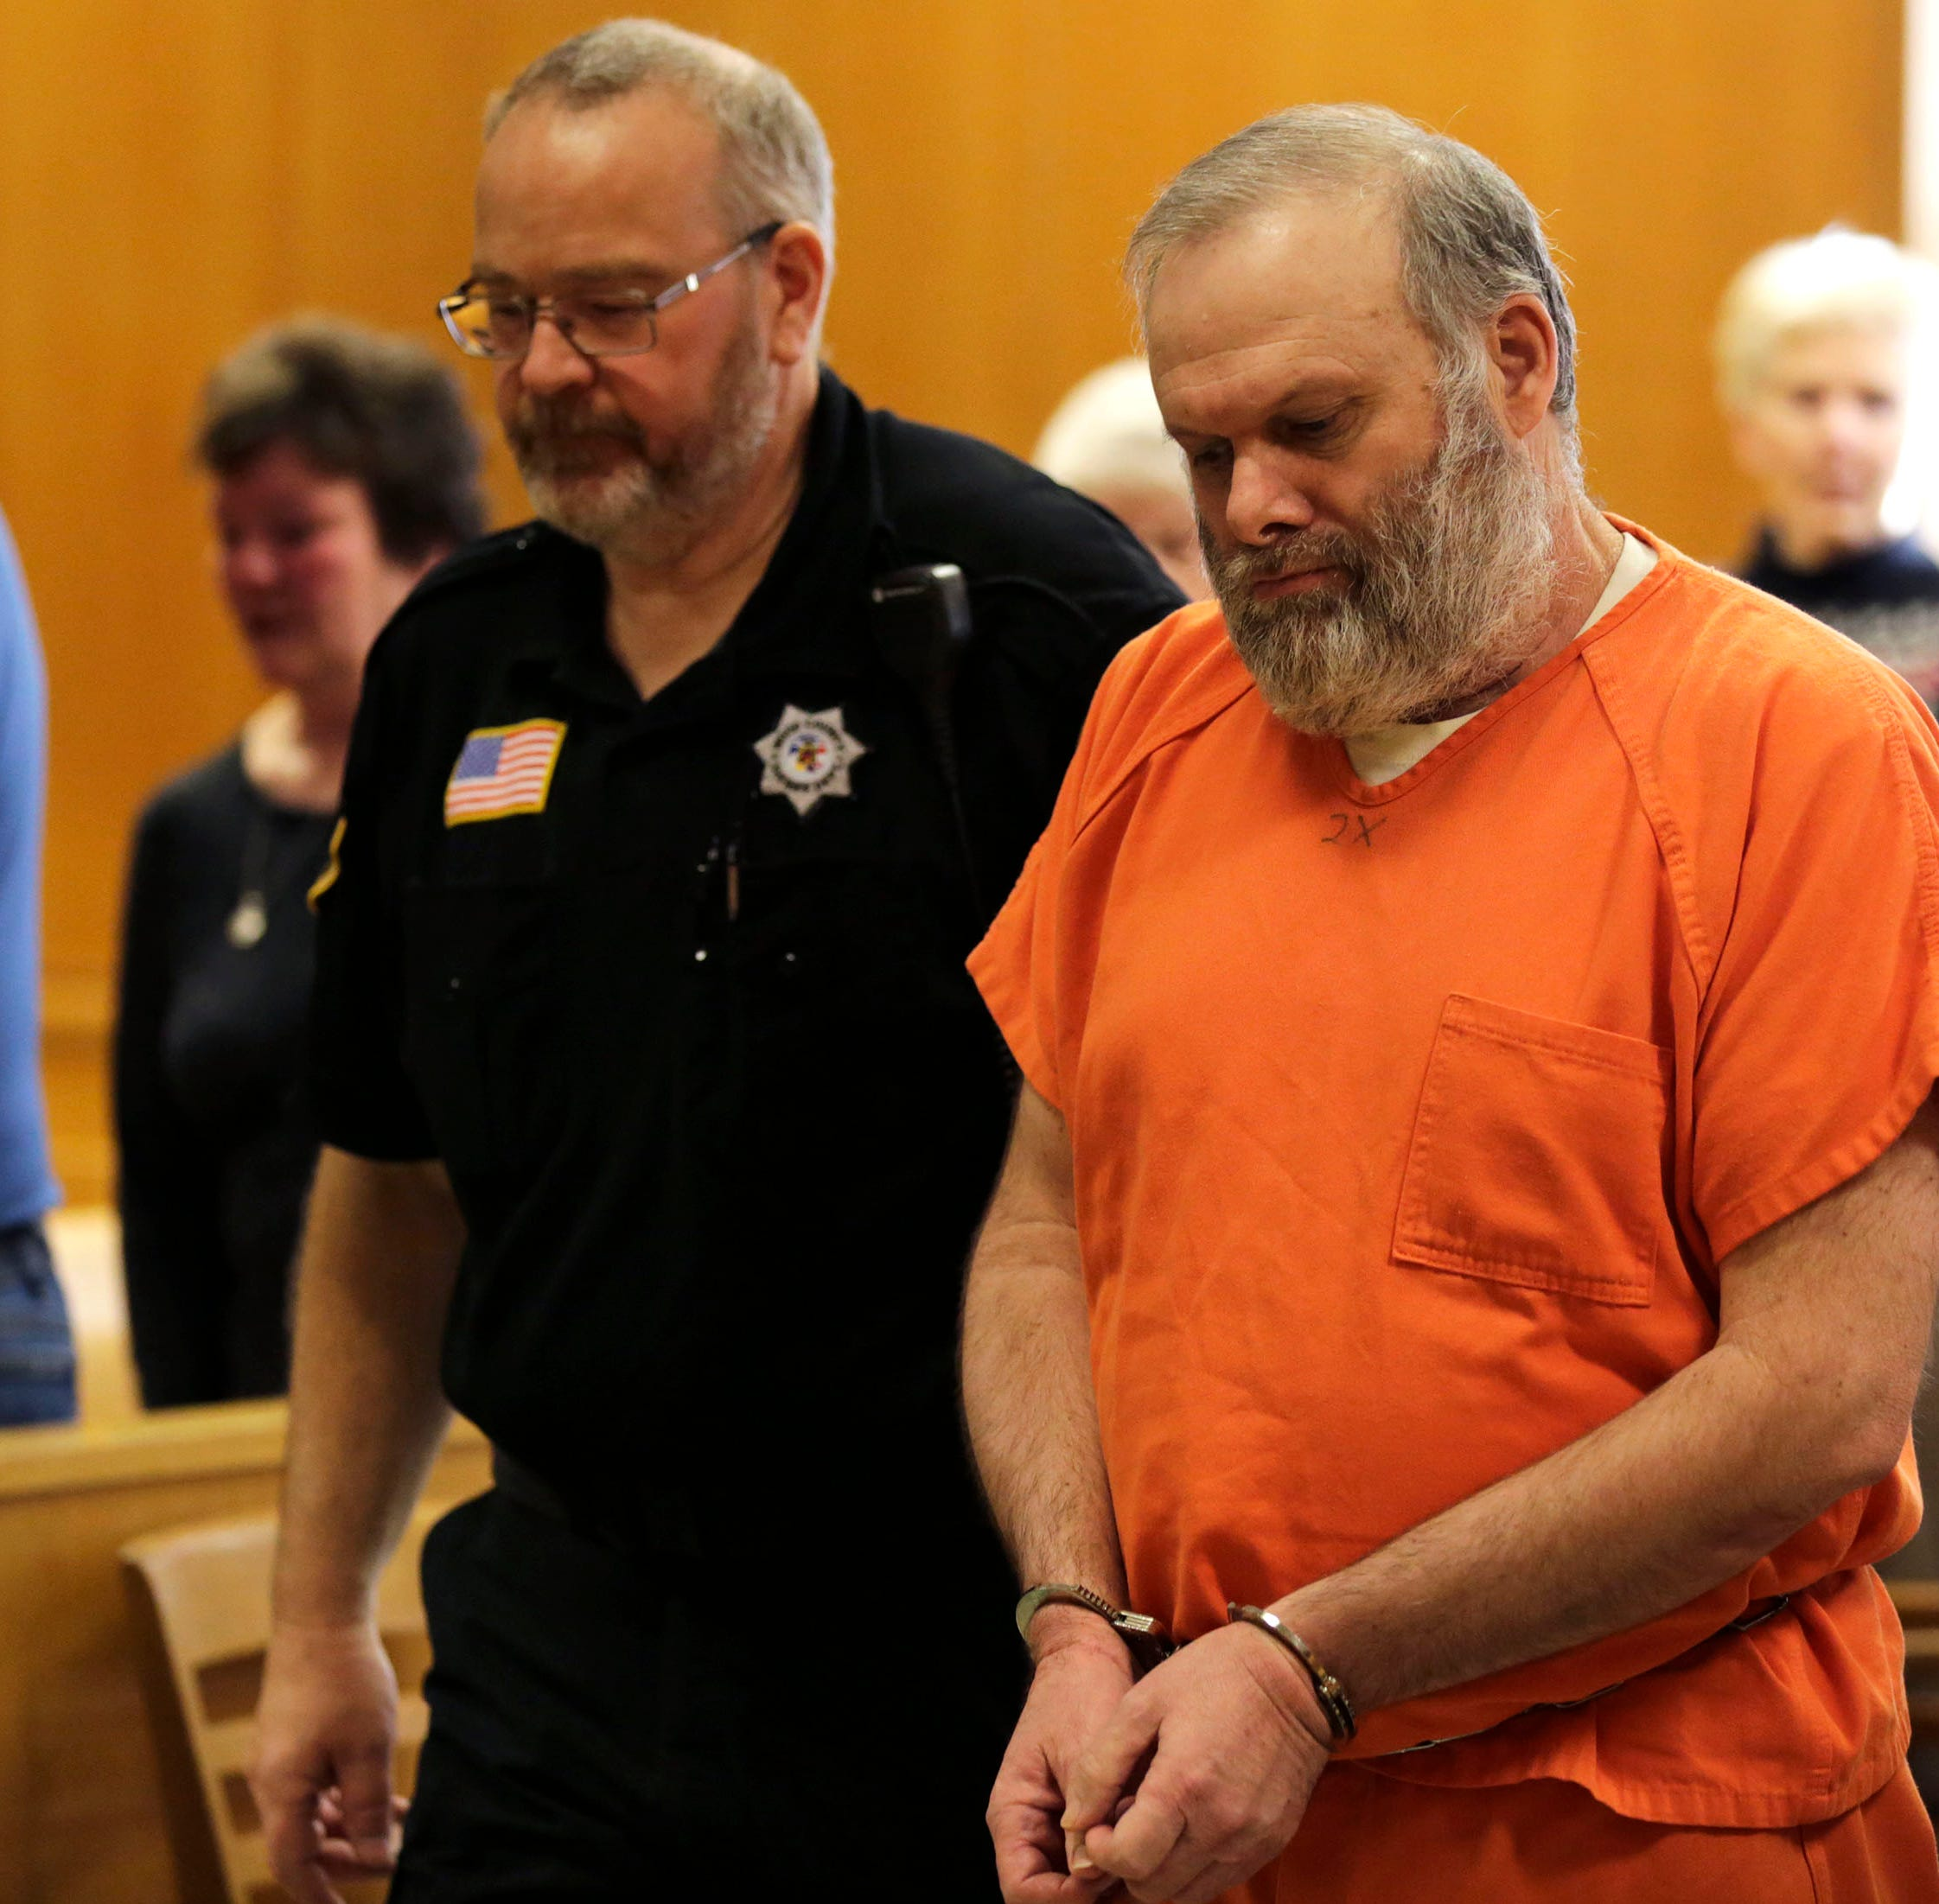 Wisconsin Rapids gunman gets life in prison for shooting bakery owner with kids nearby